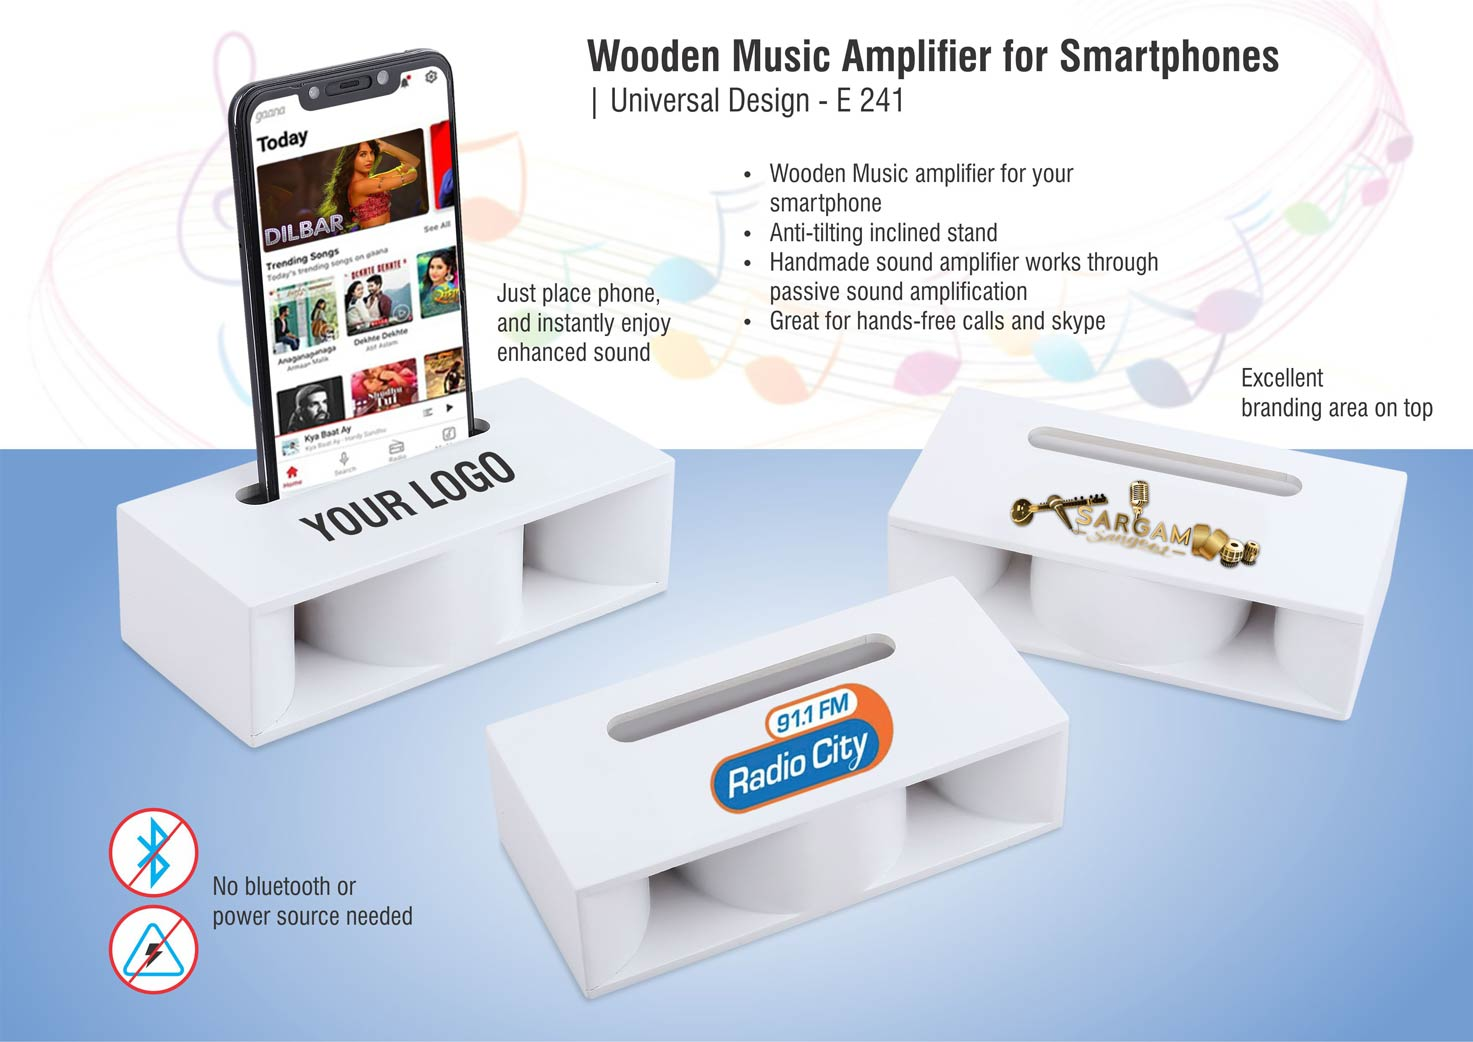 E241 - Wooden Music Amplifier for Smartphones | Universal Design (printing included MOQ 100 pc)